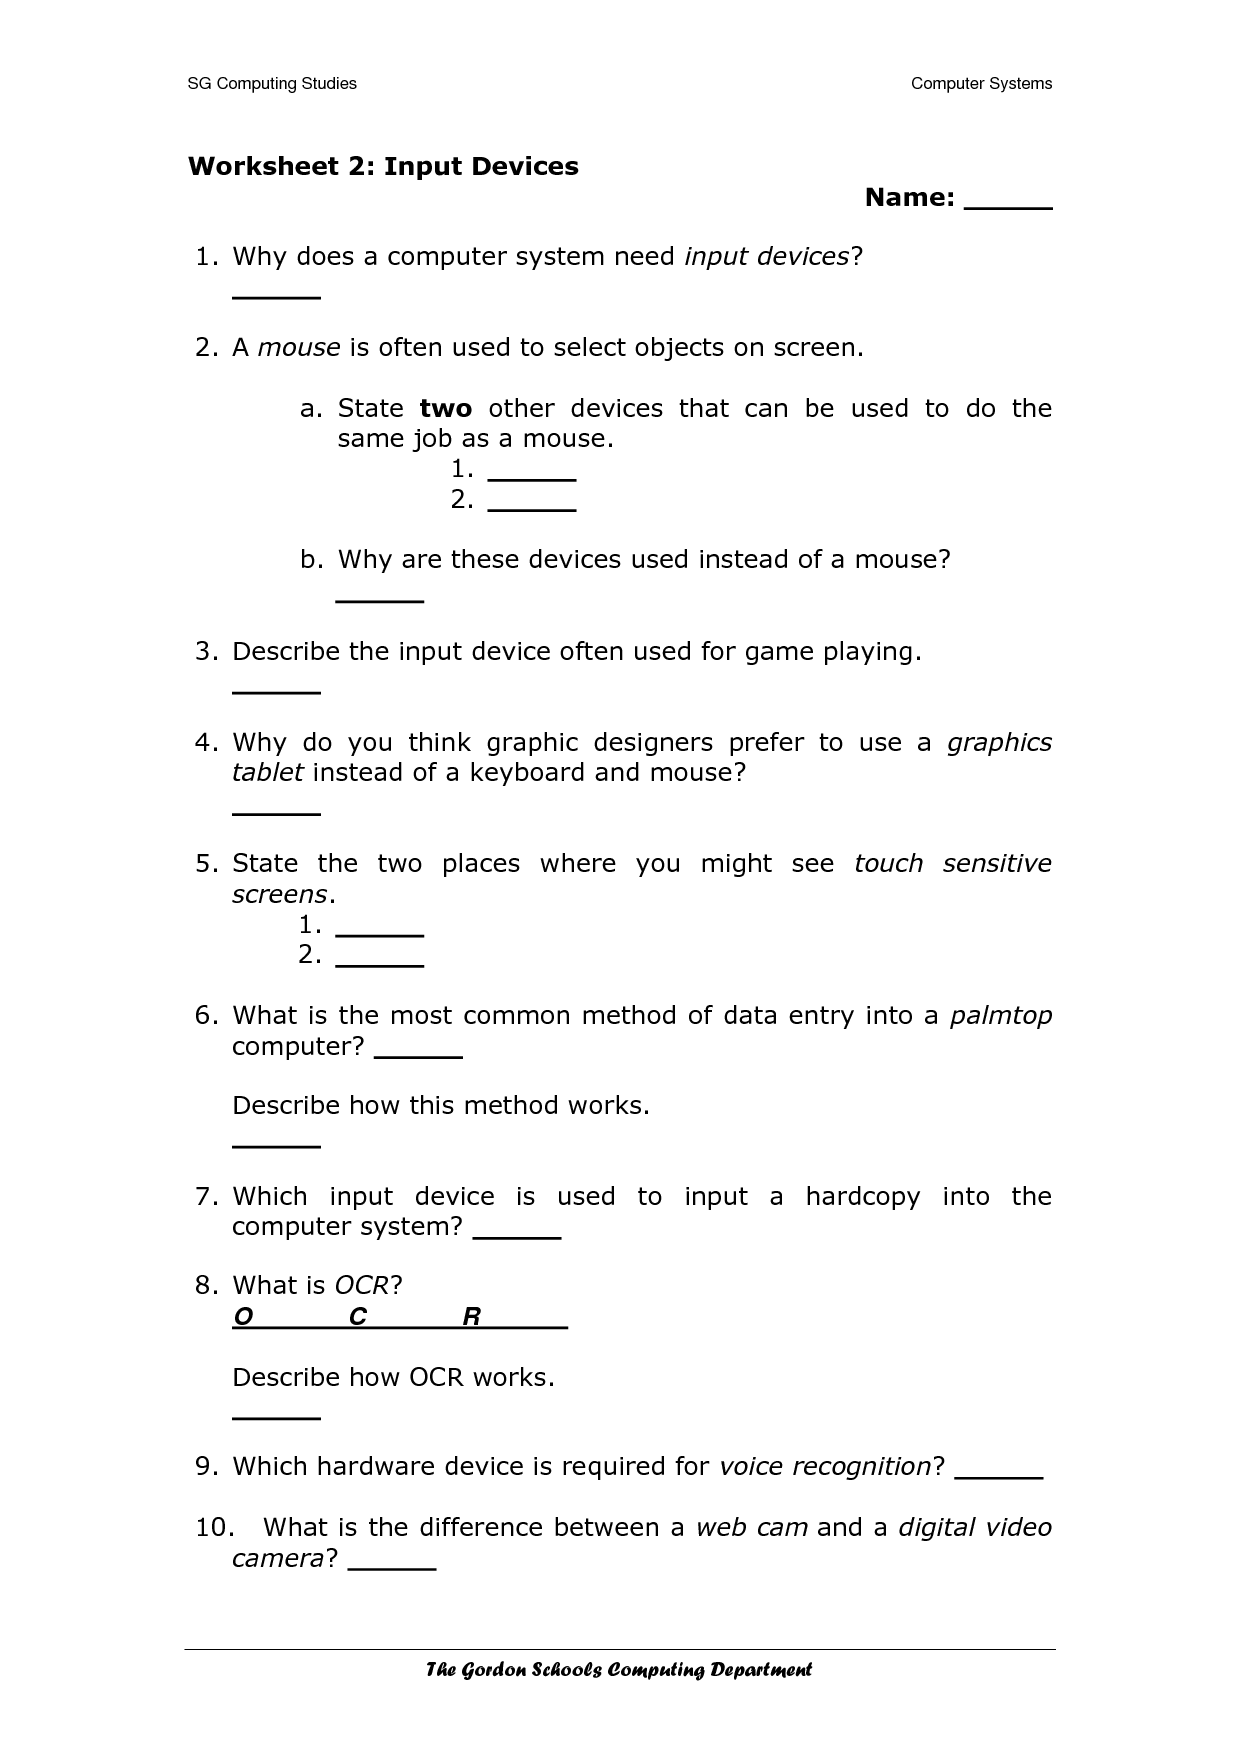 18 Best Images Of Using The Computer Worksheet